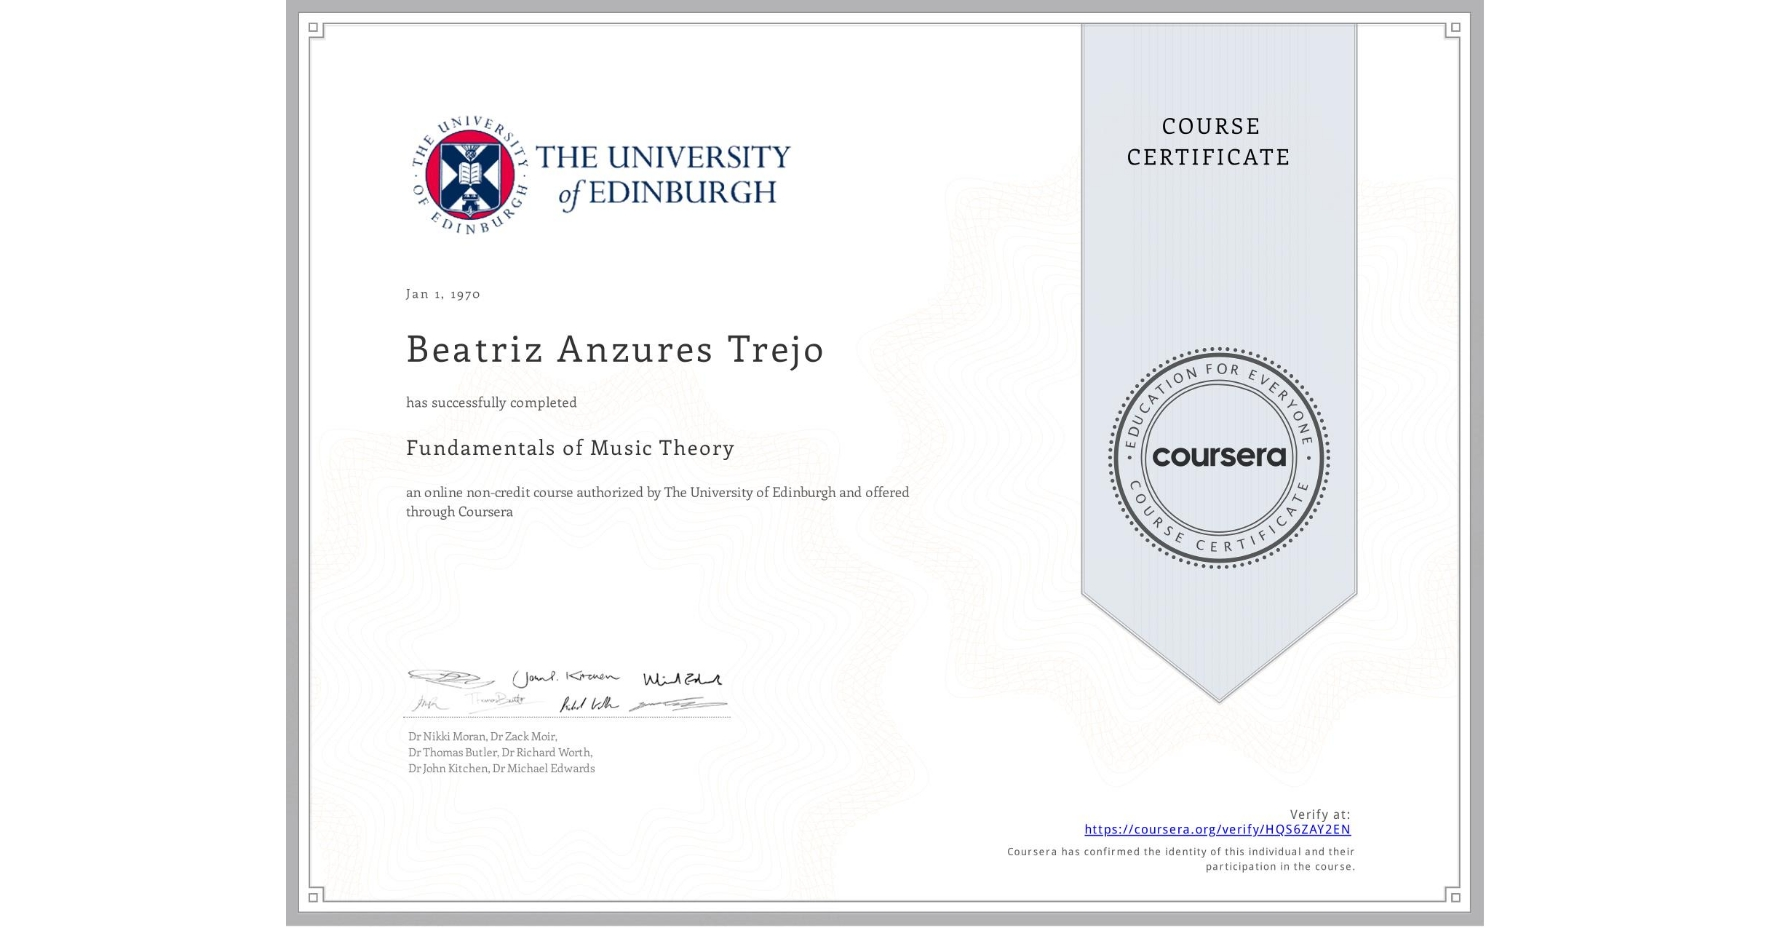 View certificate for Beatriz Anzures Trejo, Fundamentals of Music Theory, an online non-credit course authorized by The University of Edinburgh and offered through Coursera